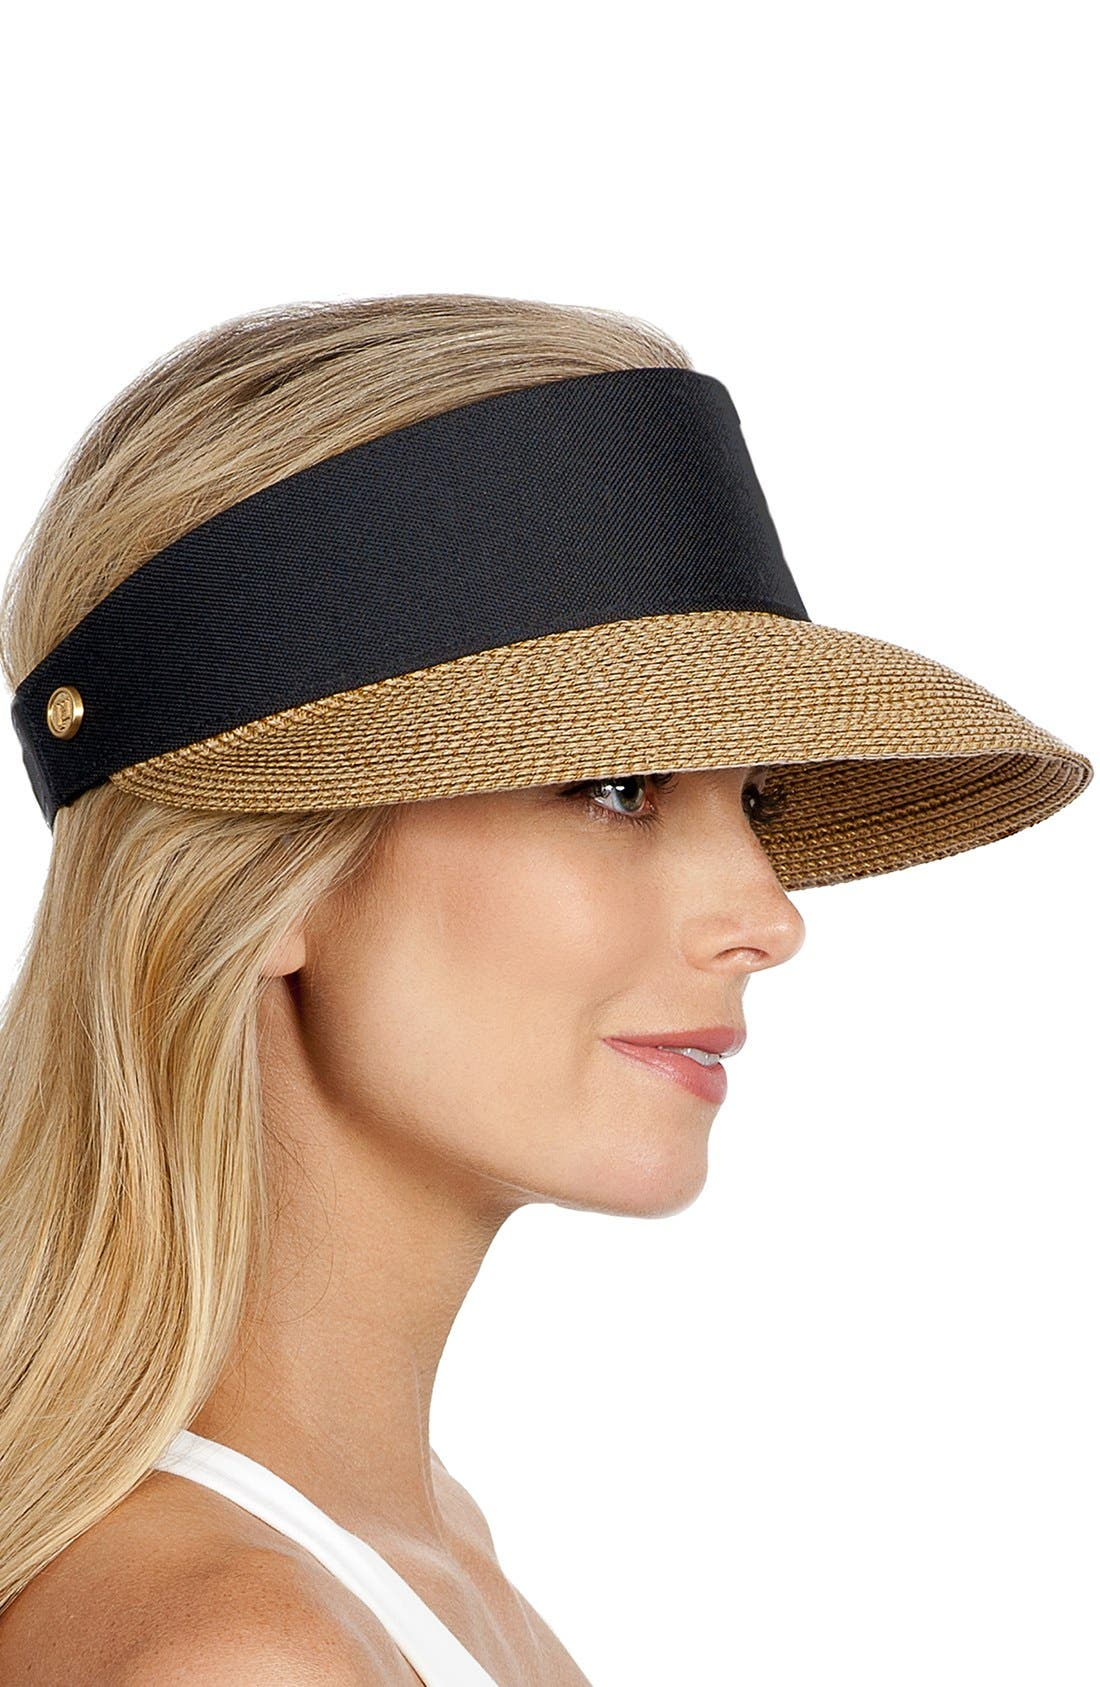 a64b1a63484 Brown Hats for Women